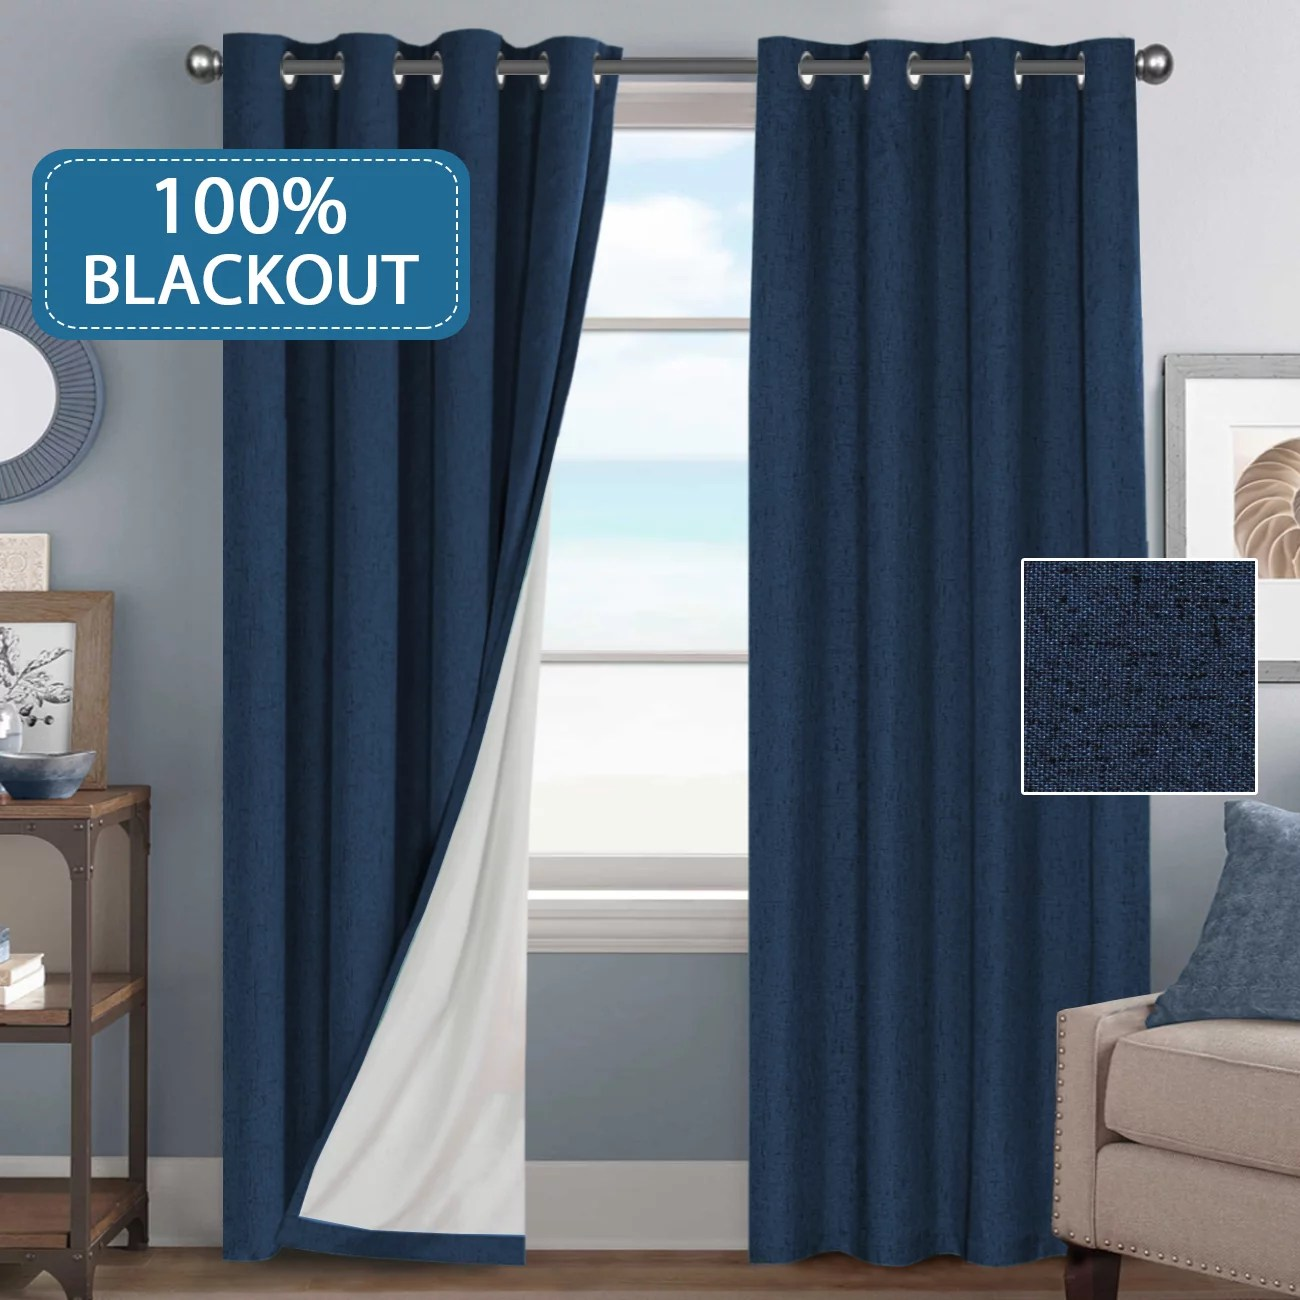 100 blackout waterproof curtains for bedroom linen textured window curtain panels for living room darkening drapes grommet top sold by pair 52 w